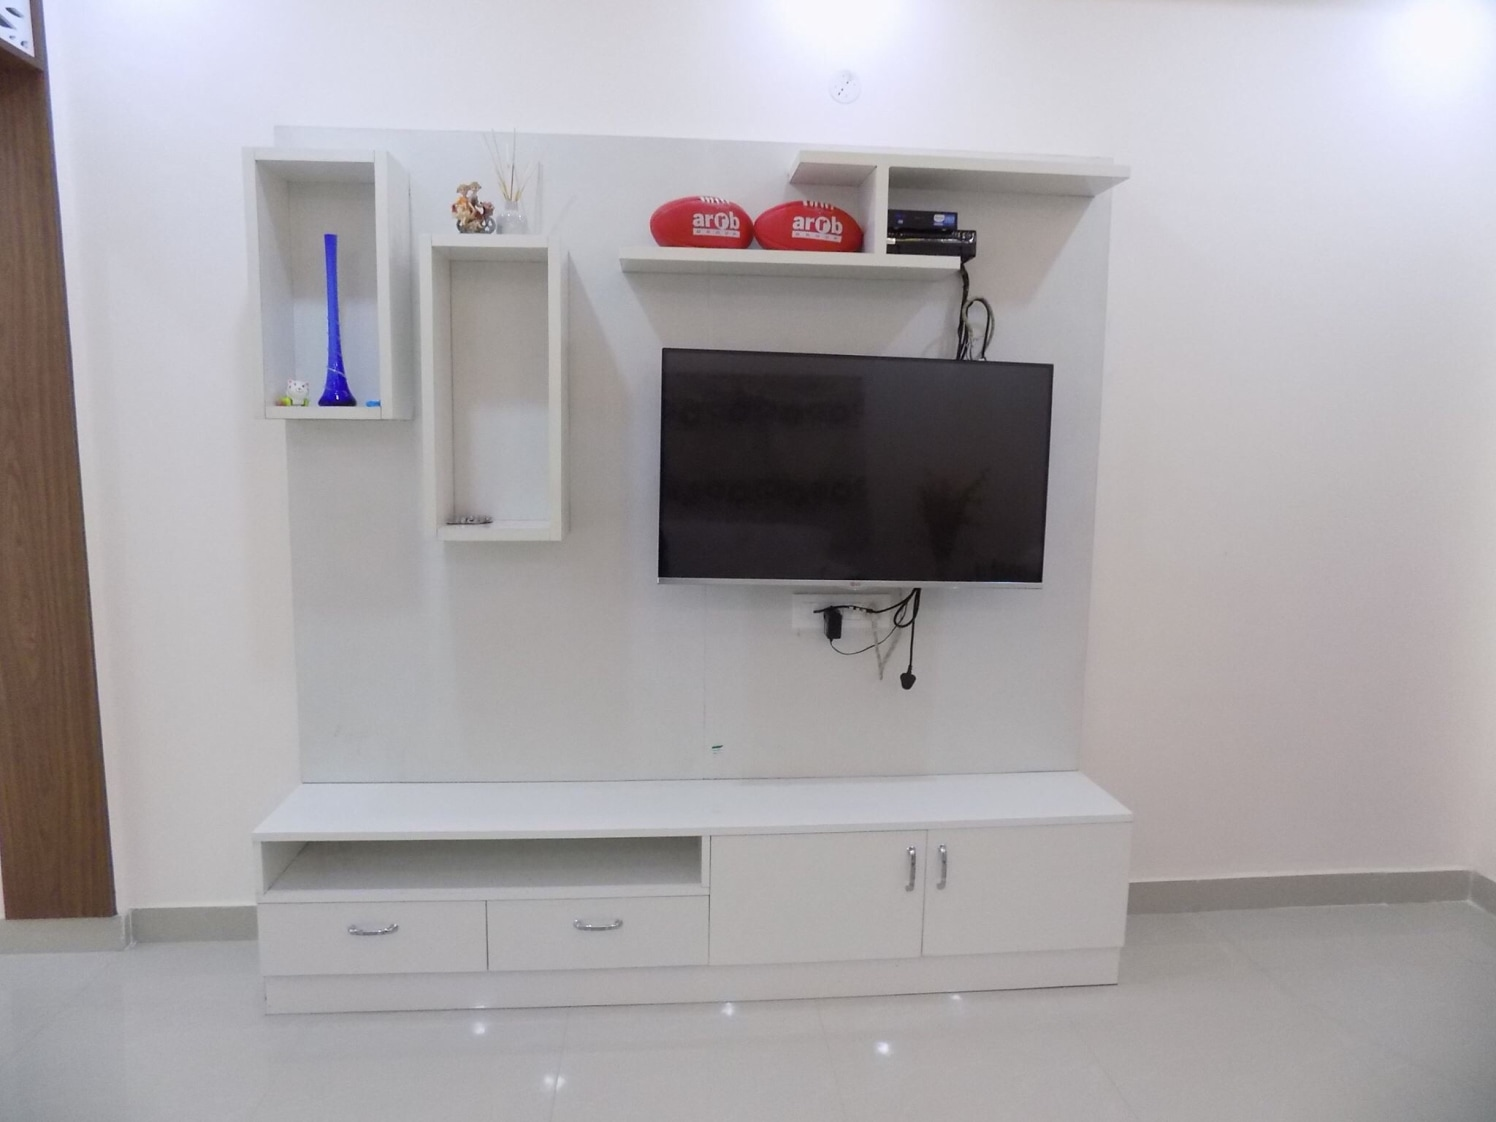 Modern Tv Cabinet With White Blocks by Saurabh Garg Living-room Modern | Interior Design Photos & Ideas